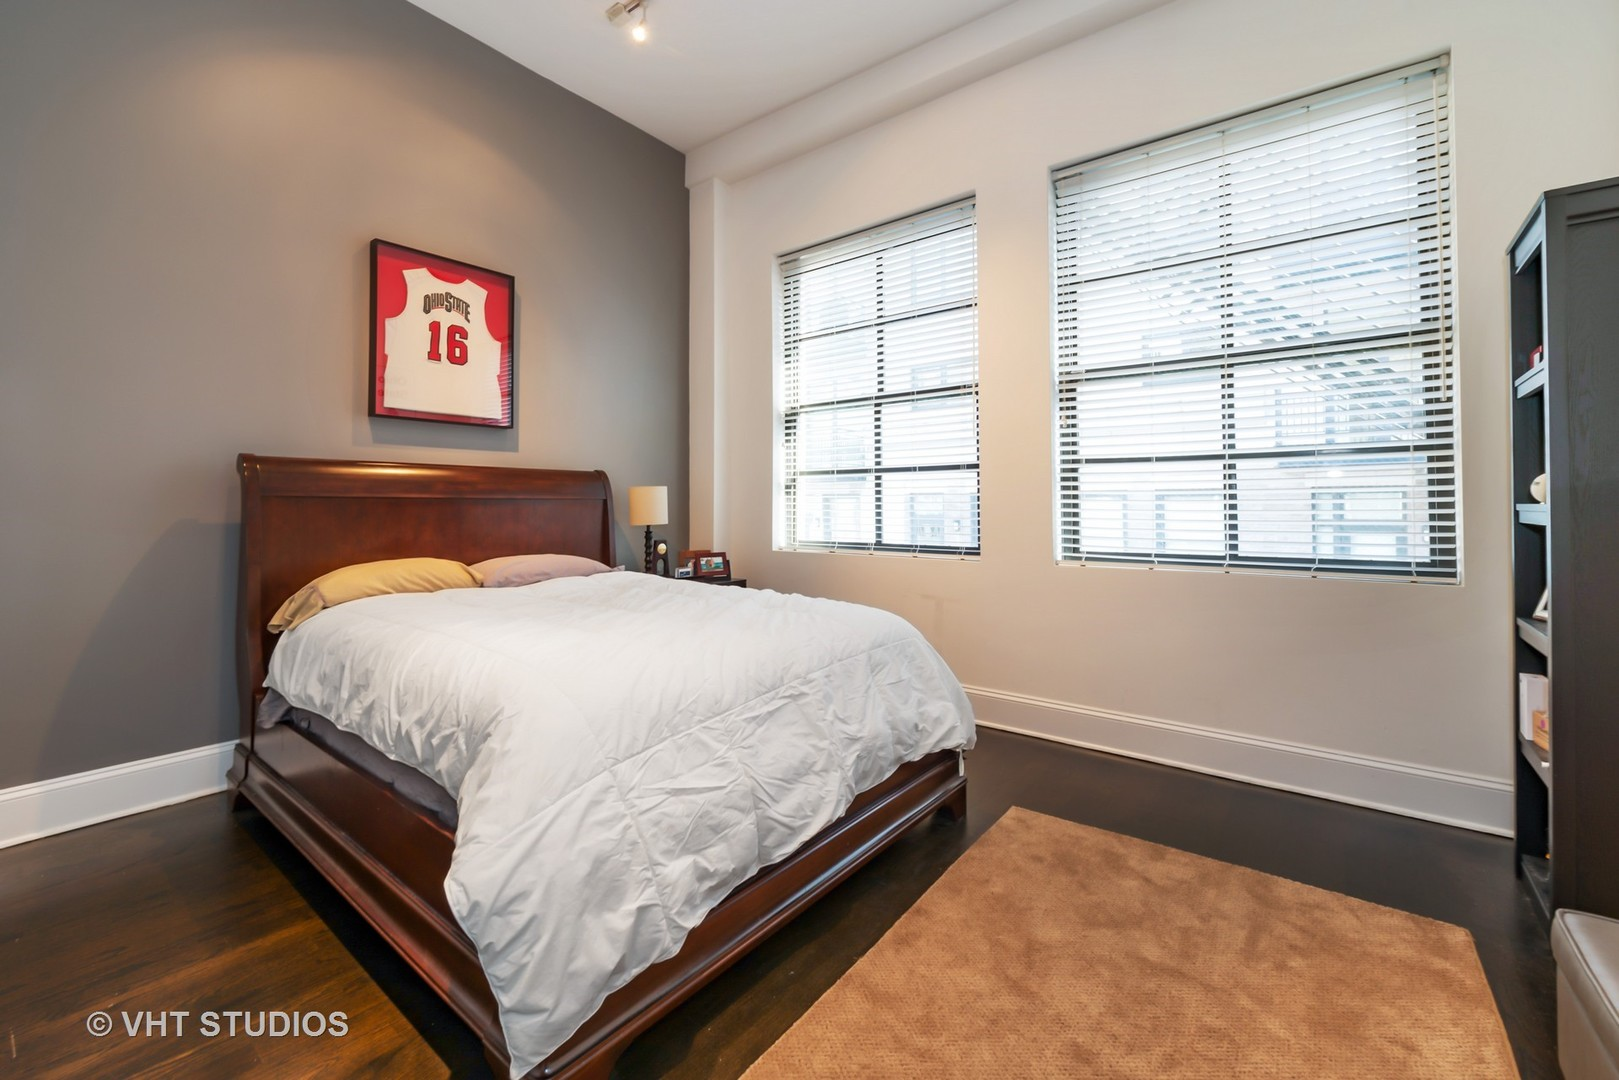 5 WABASH Street, Chicago, Illinois 60602, 2 Bedrooms Bedrooms, ,2 BathroomsBathrooms,Attached Single,For Sale,WABASH,09813355